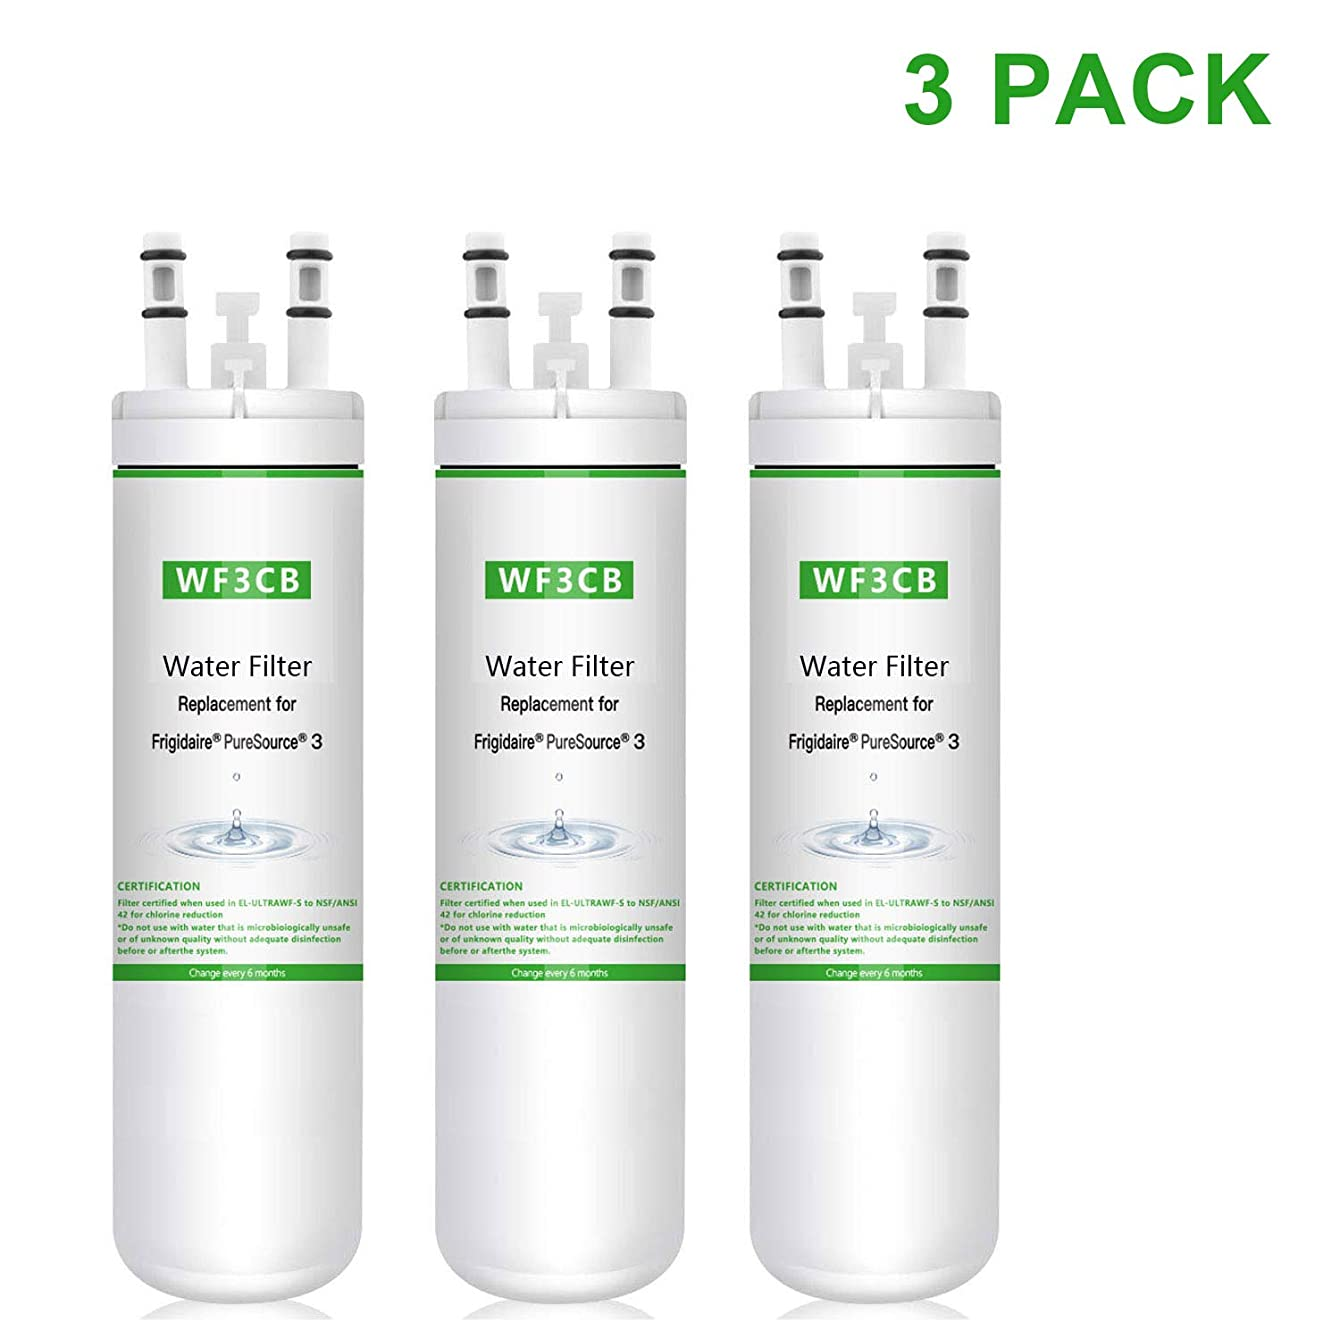 LXQS Refrigerator Pure Source 3 for Frigidaire Water Filter (3)